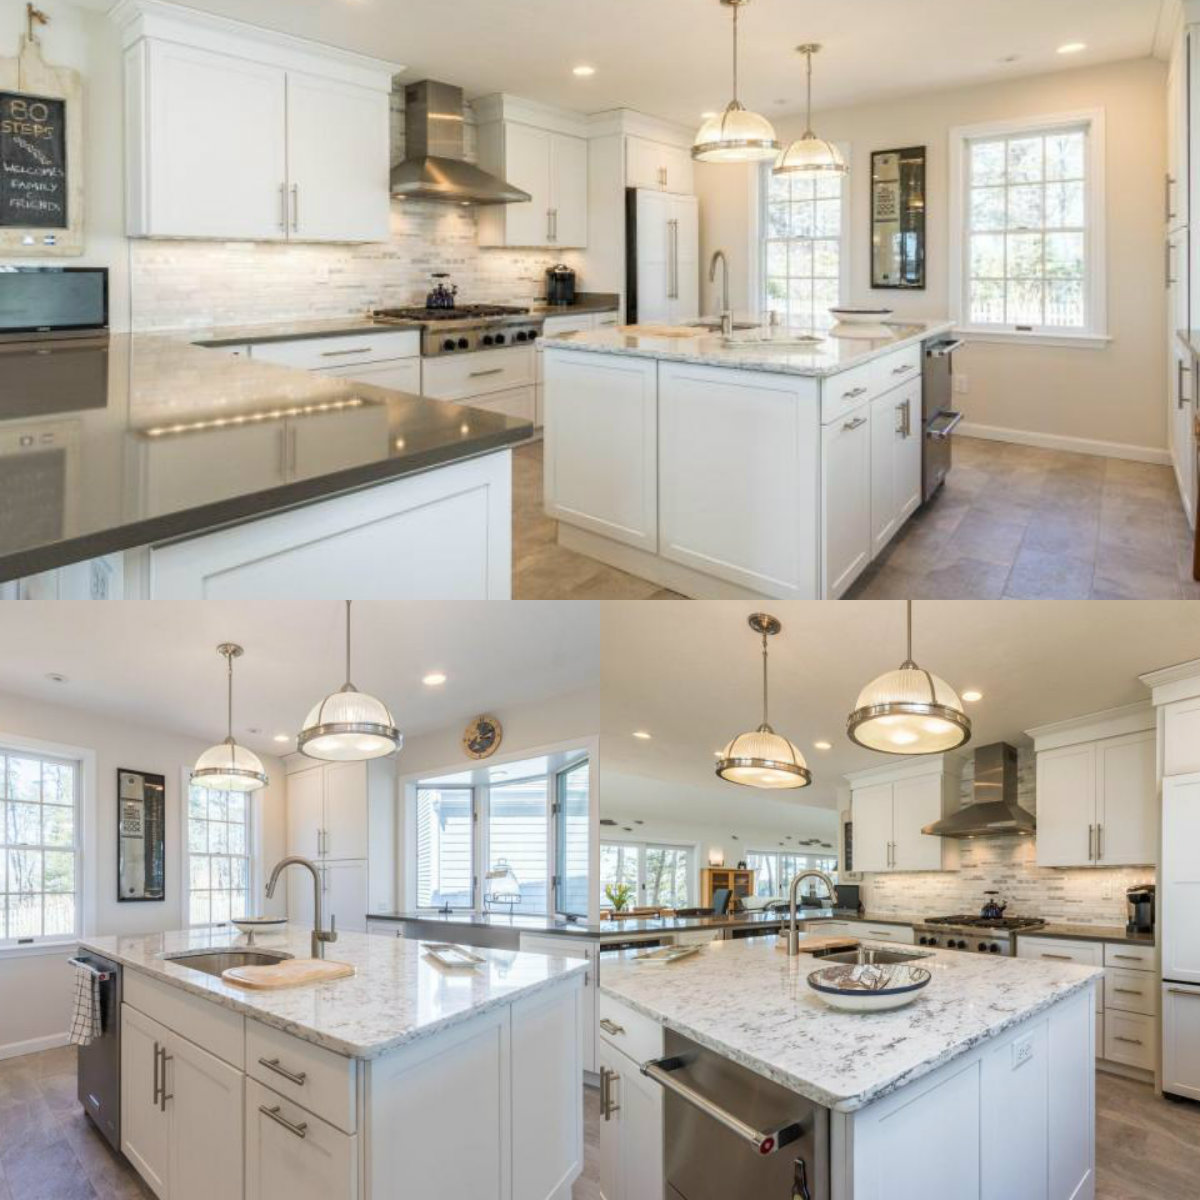 Images of kitchen at 524 Crowells Bog Road in Brewster Cape Cod MA